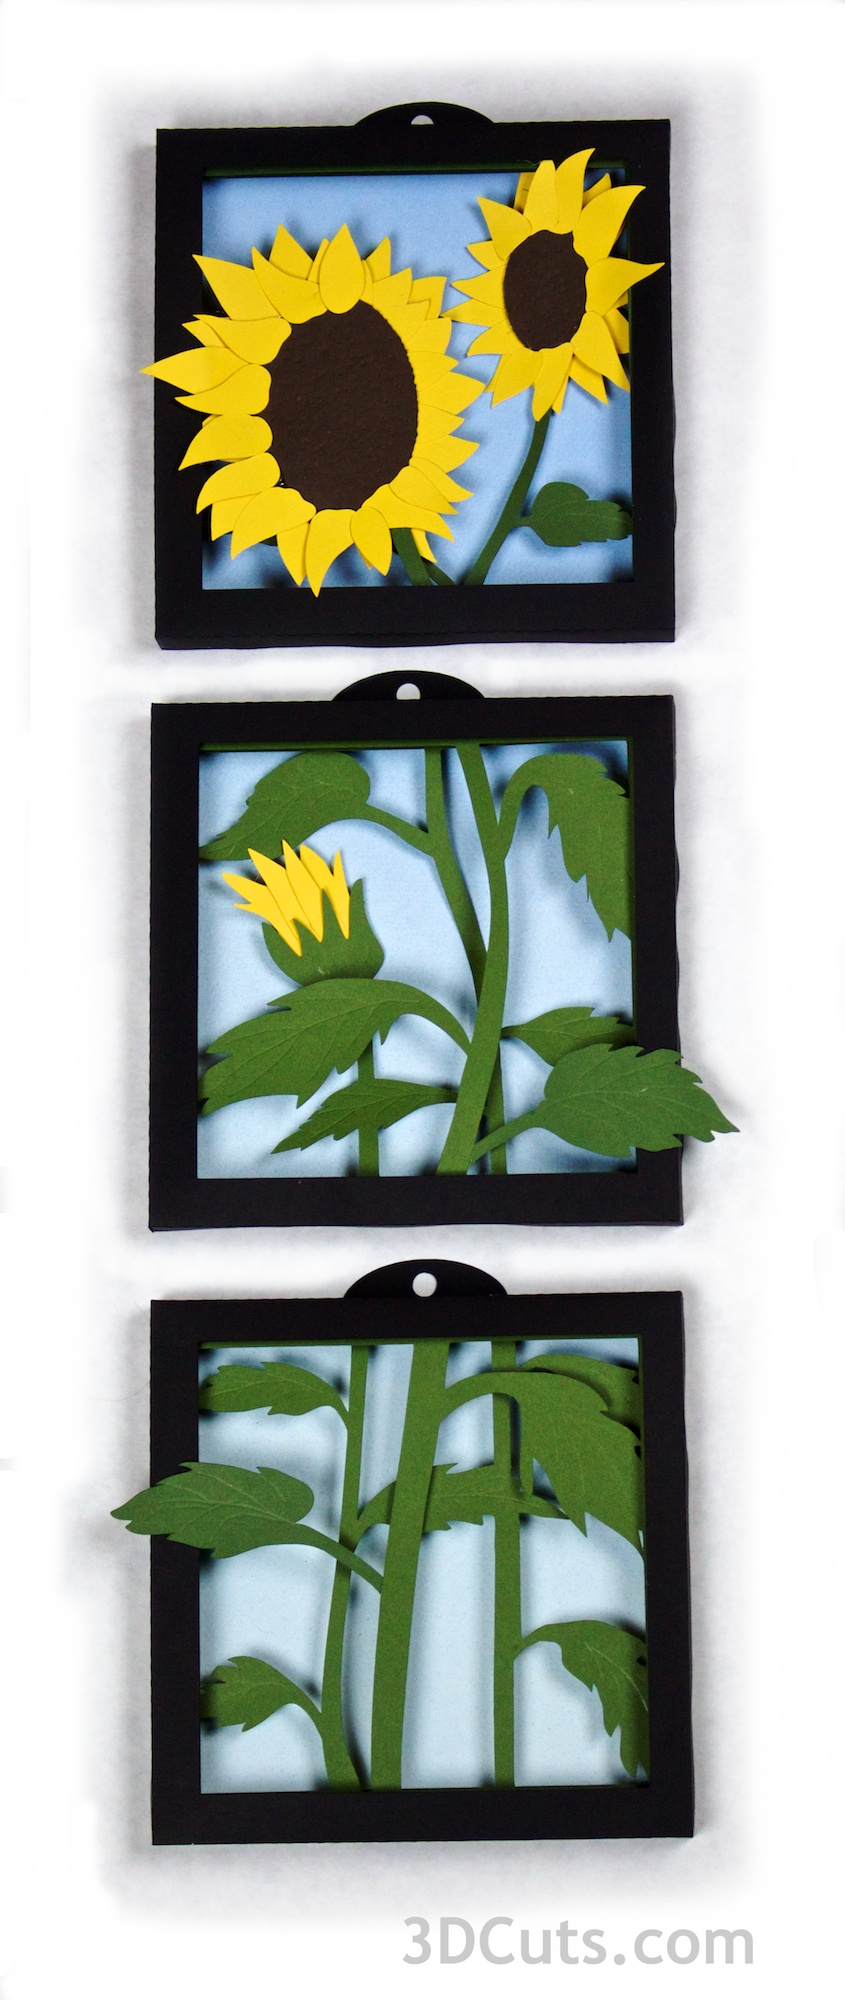 Sunflowers by 3dcuts.com